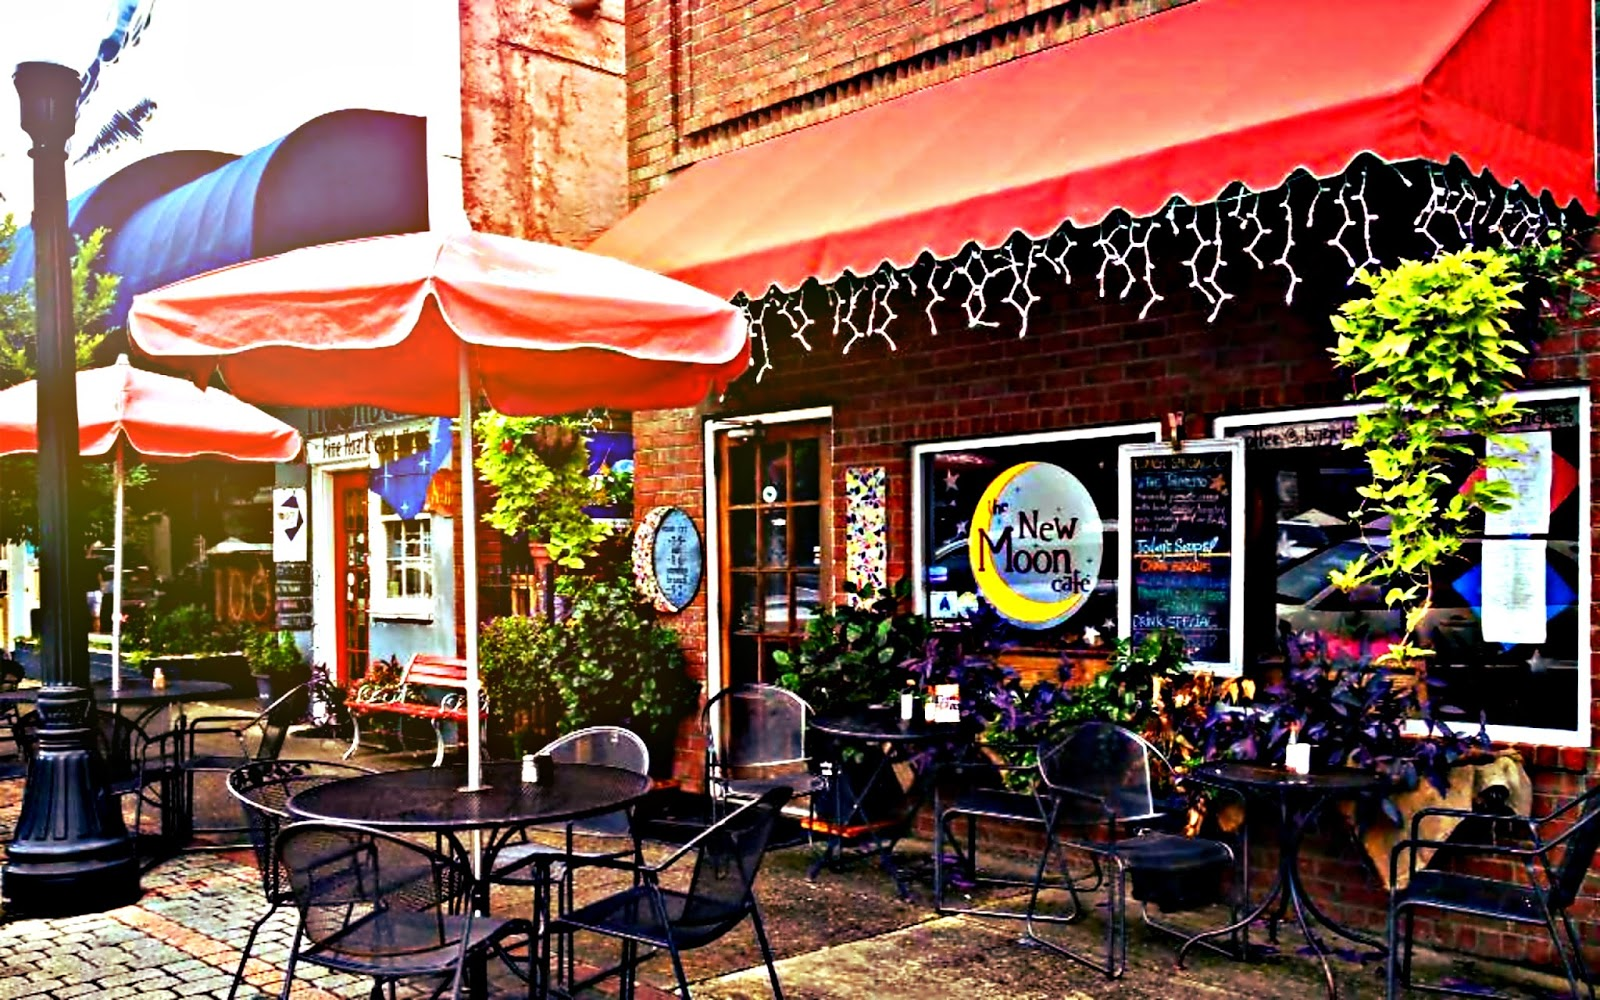 Get Your Fix - New Moon Cafe116 Laurens St NW, Aiken, SC 29801Simply the spot to go for breakfast in Aiken. Sit outside under an umbrella and spend your morning people watching (and downing an egg scrambler bowl).